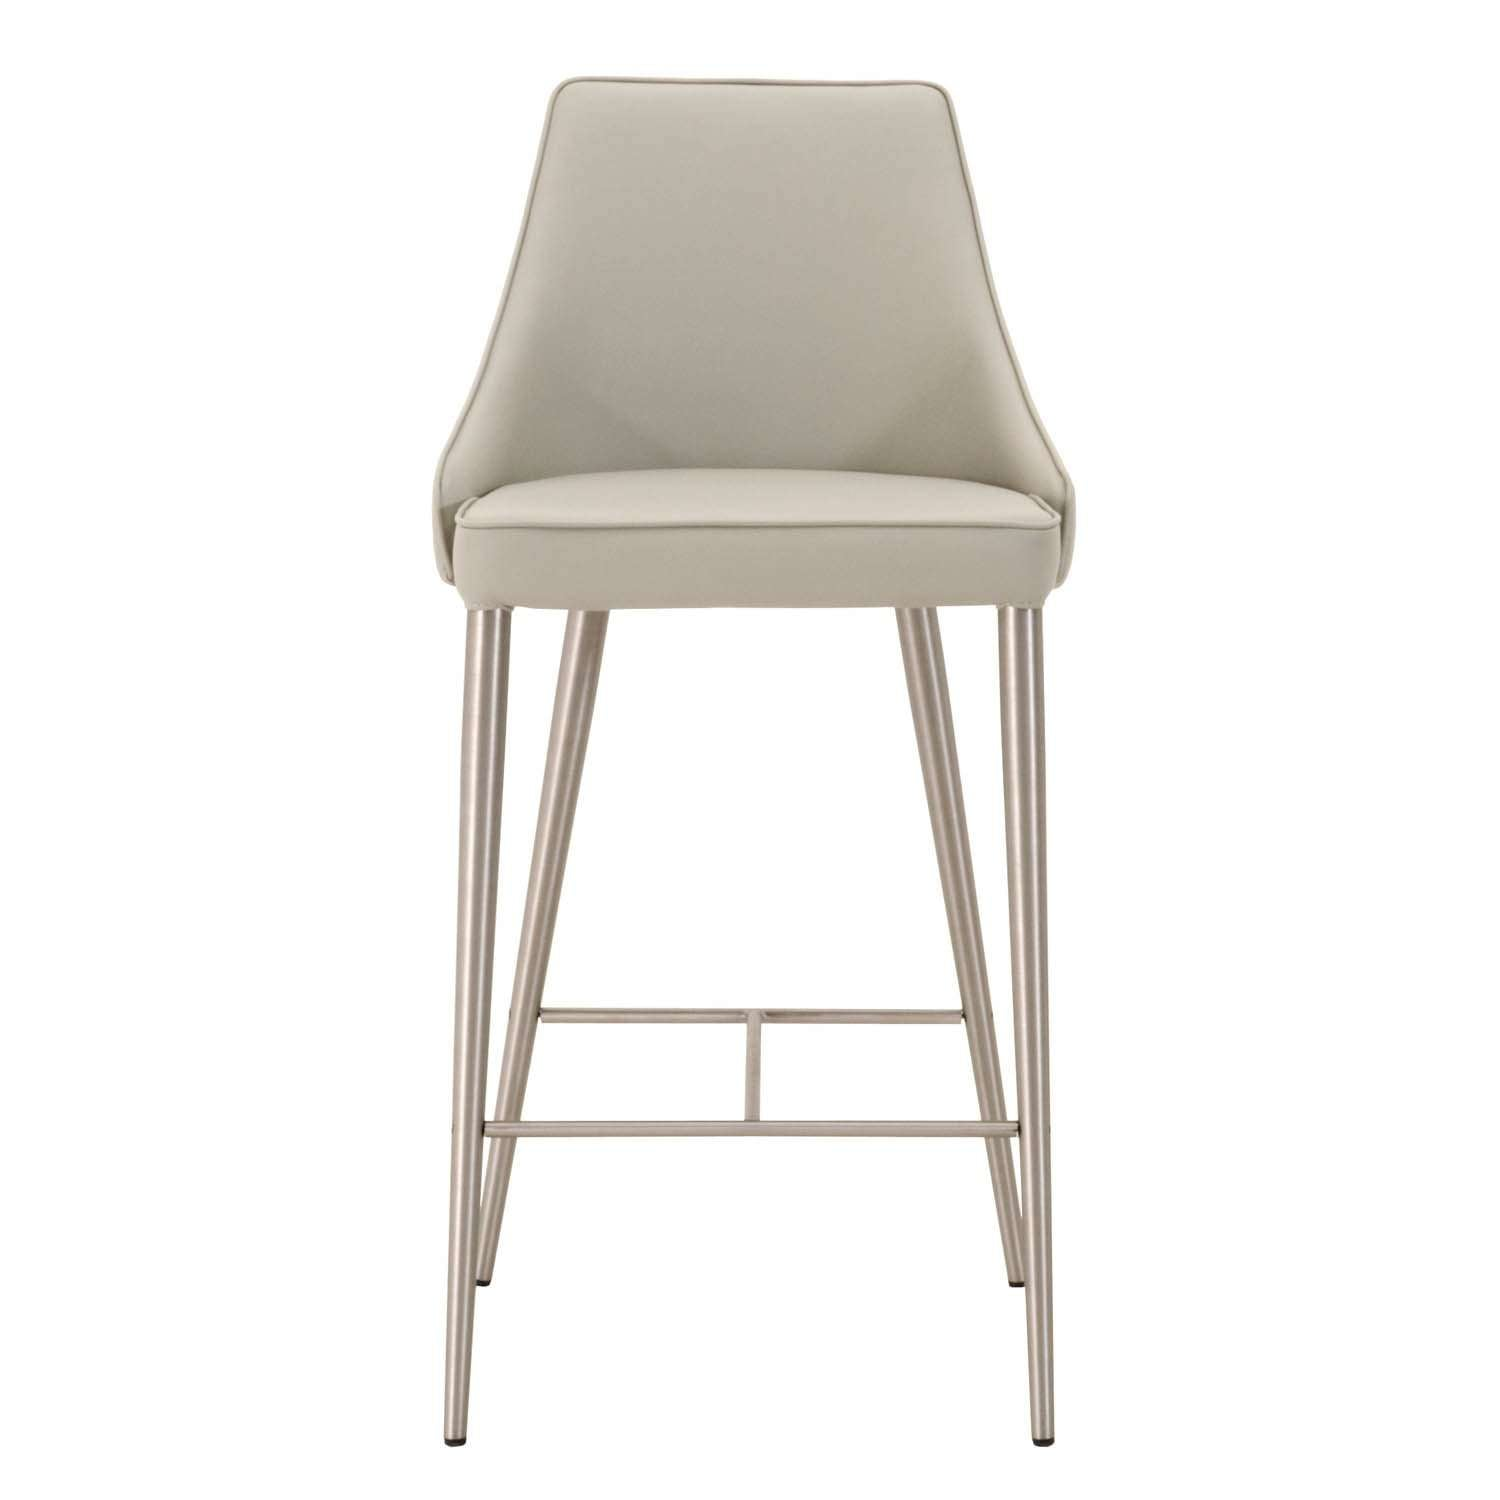 Star International Furniture-Ivy Counter Stool-Counter Stool-MODTEMPO